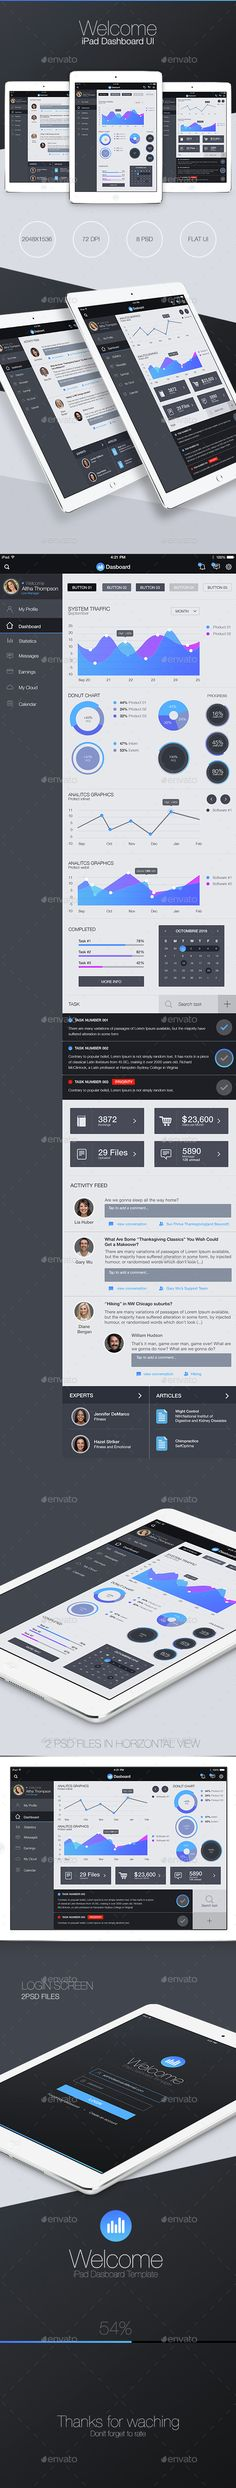 iPad Dashboard UI (User Interfaces)